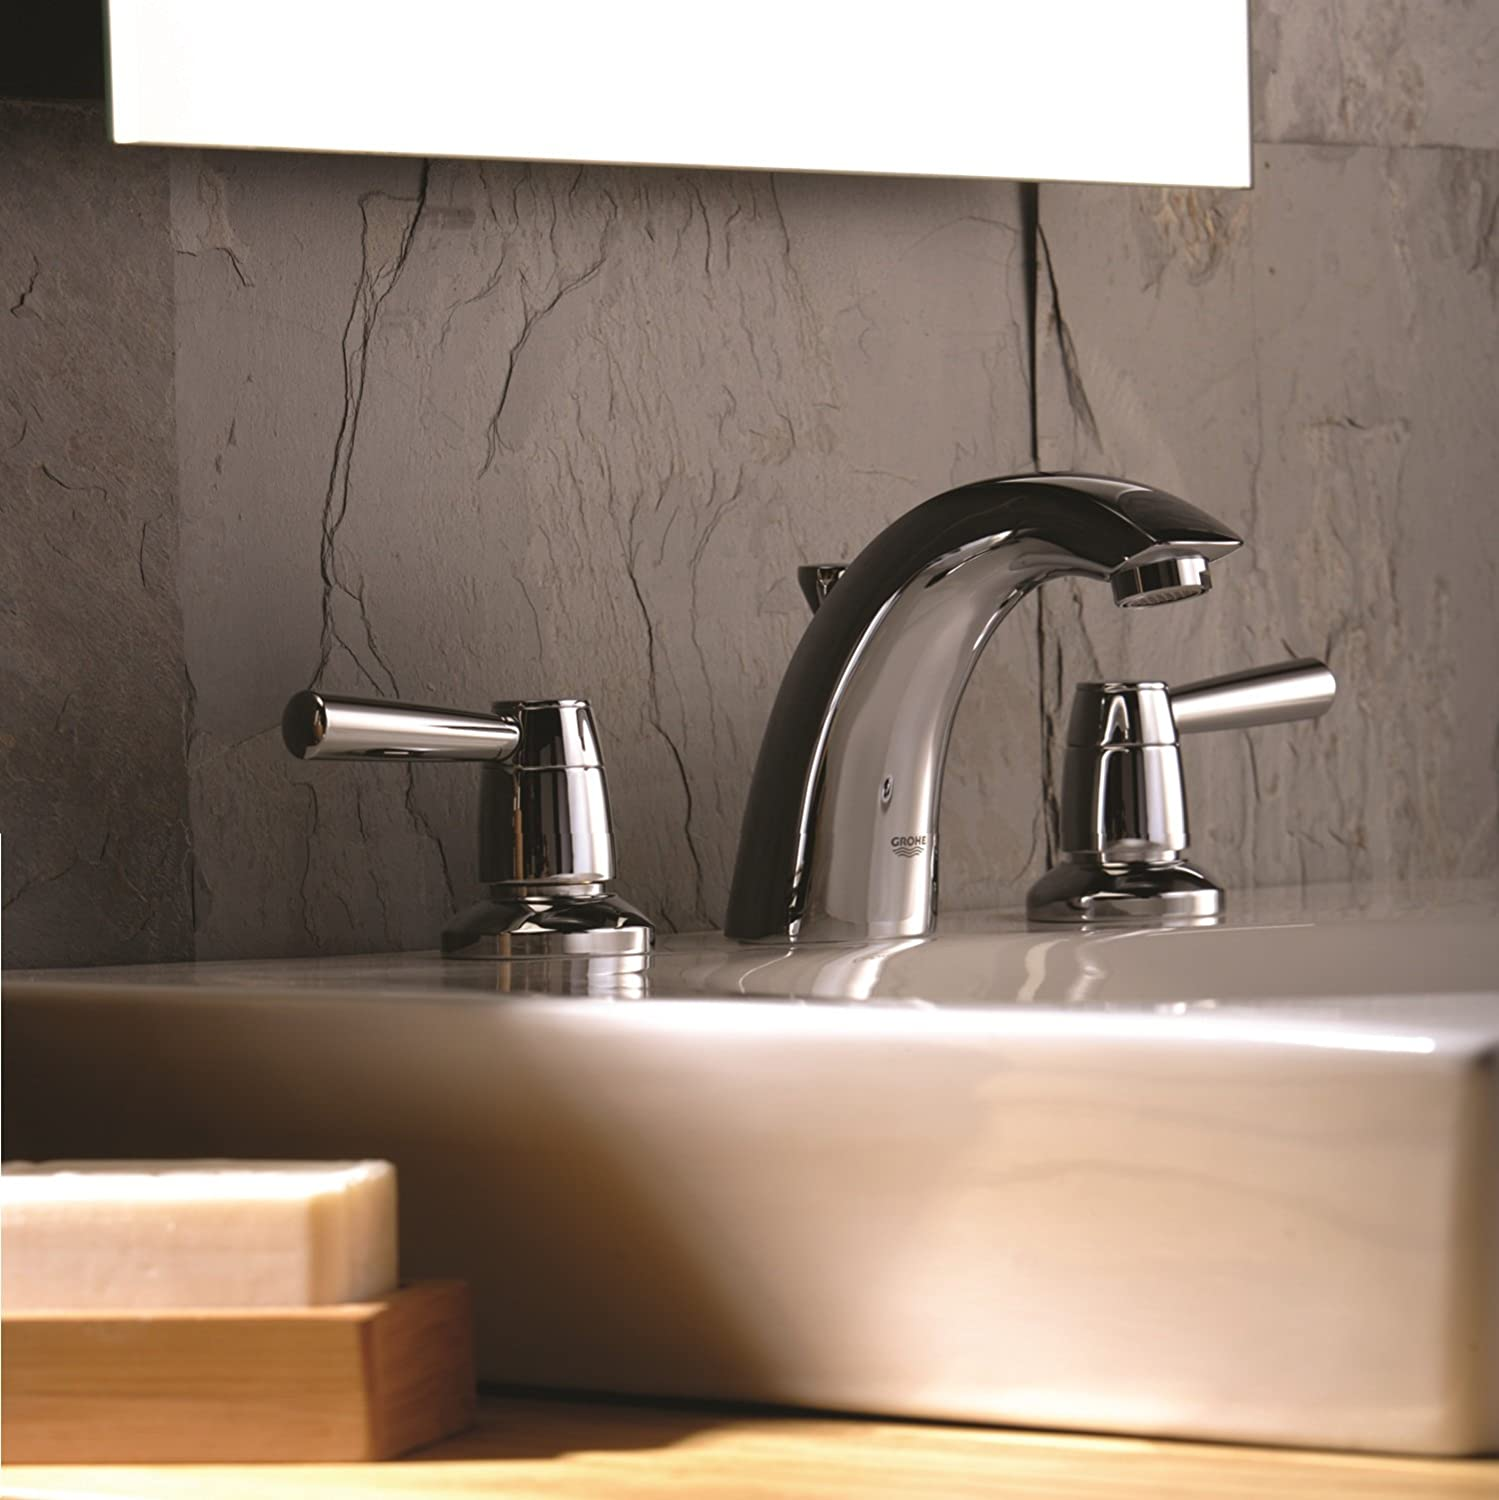 Arden 8 in. Widespread 2-Handle Bathroom Faucet - 1.5 GPM - Touch ...